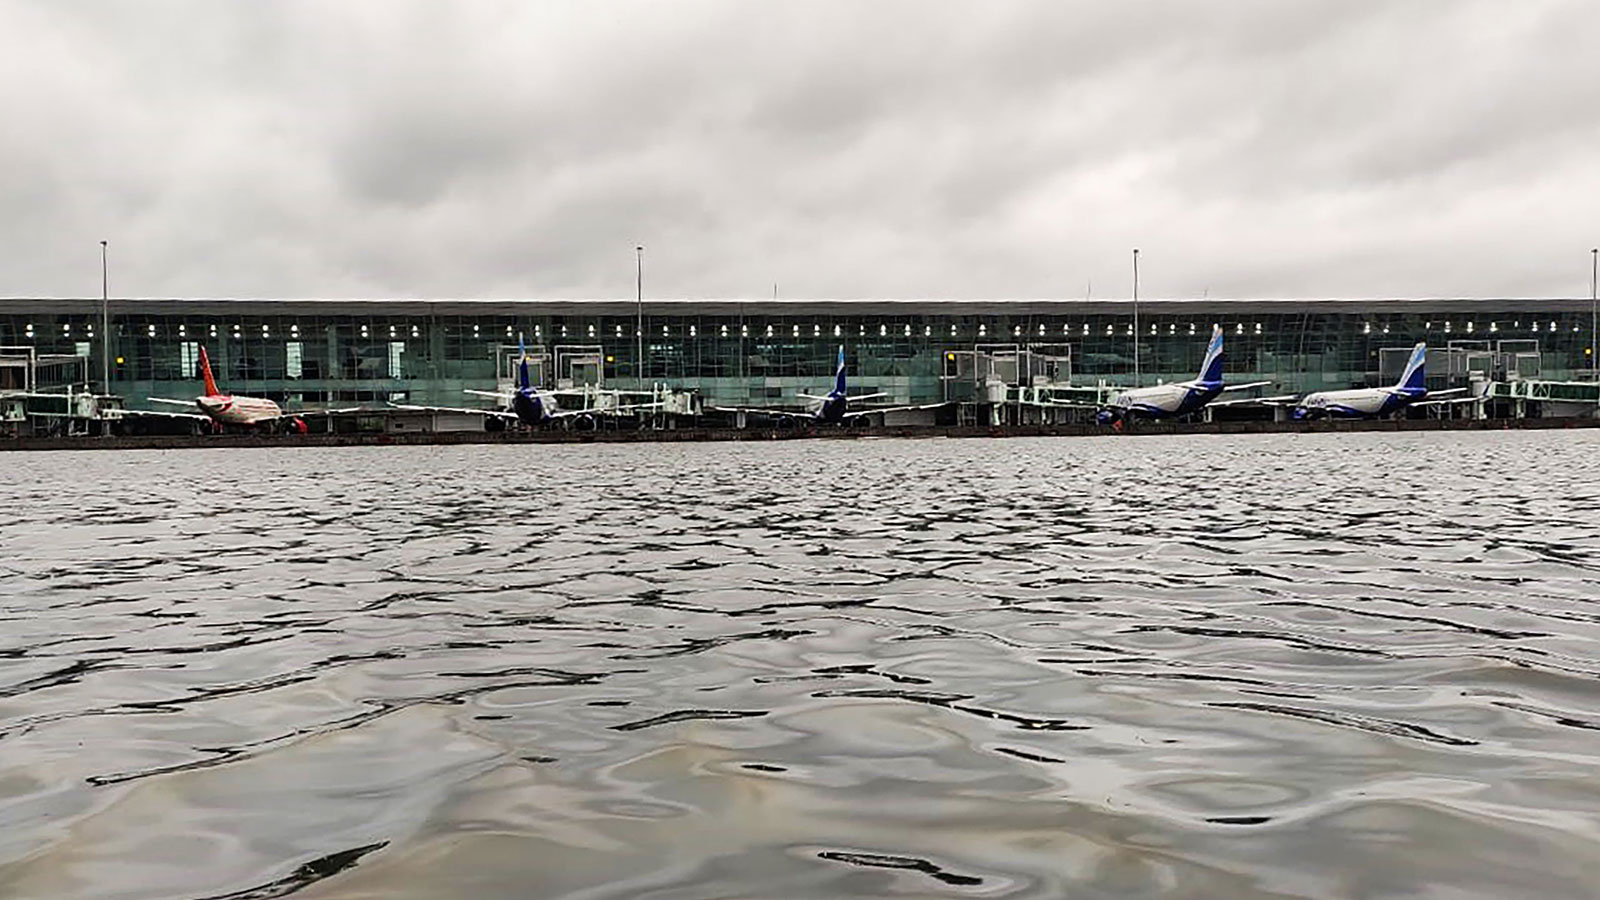 Aircrafts are parked at a terminal near the flooded tarmac at Netaji Subhas Chandra Bose International Airport after the landfall of Cyclone Amphan in Kolkata on May 21.